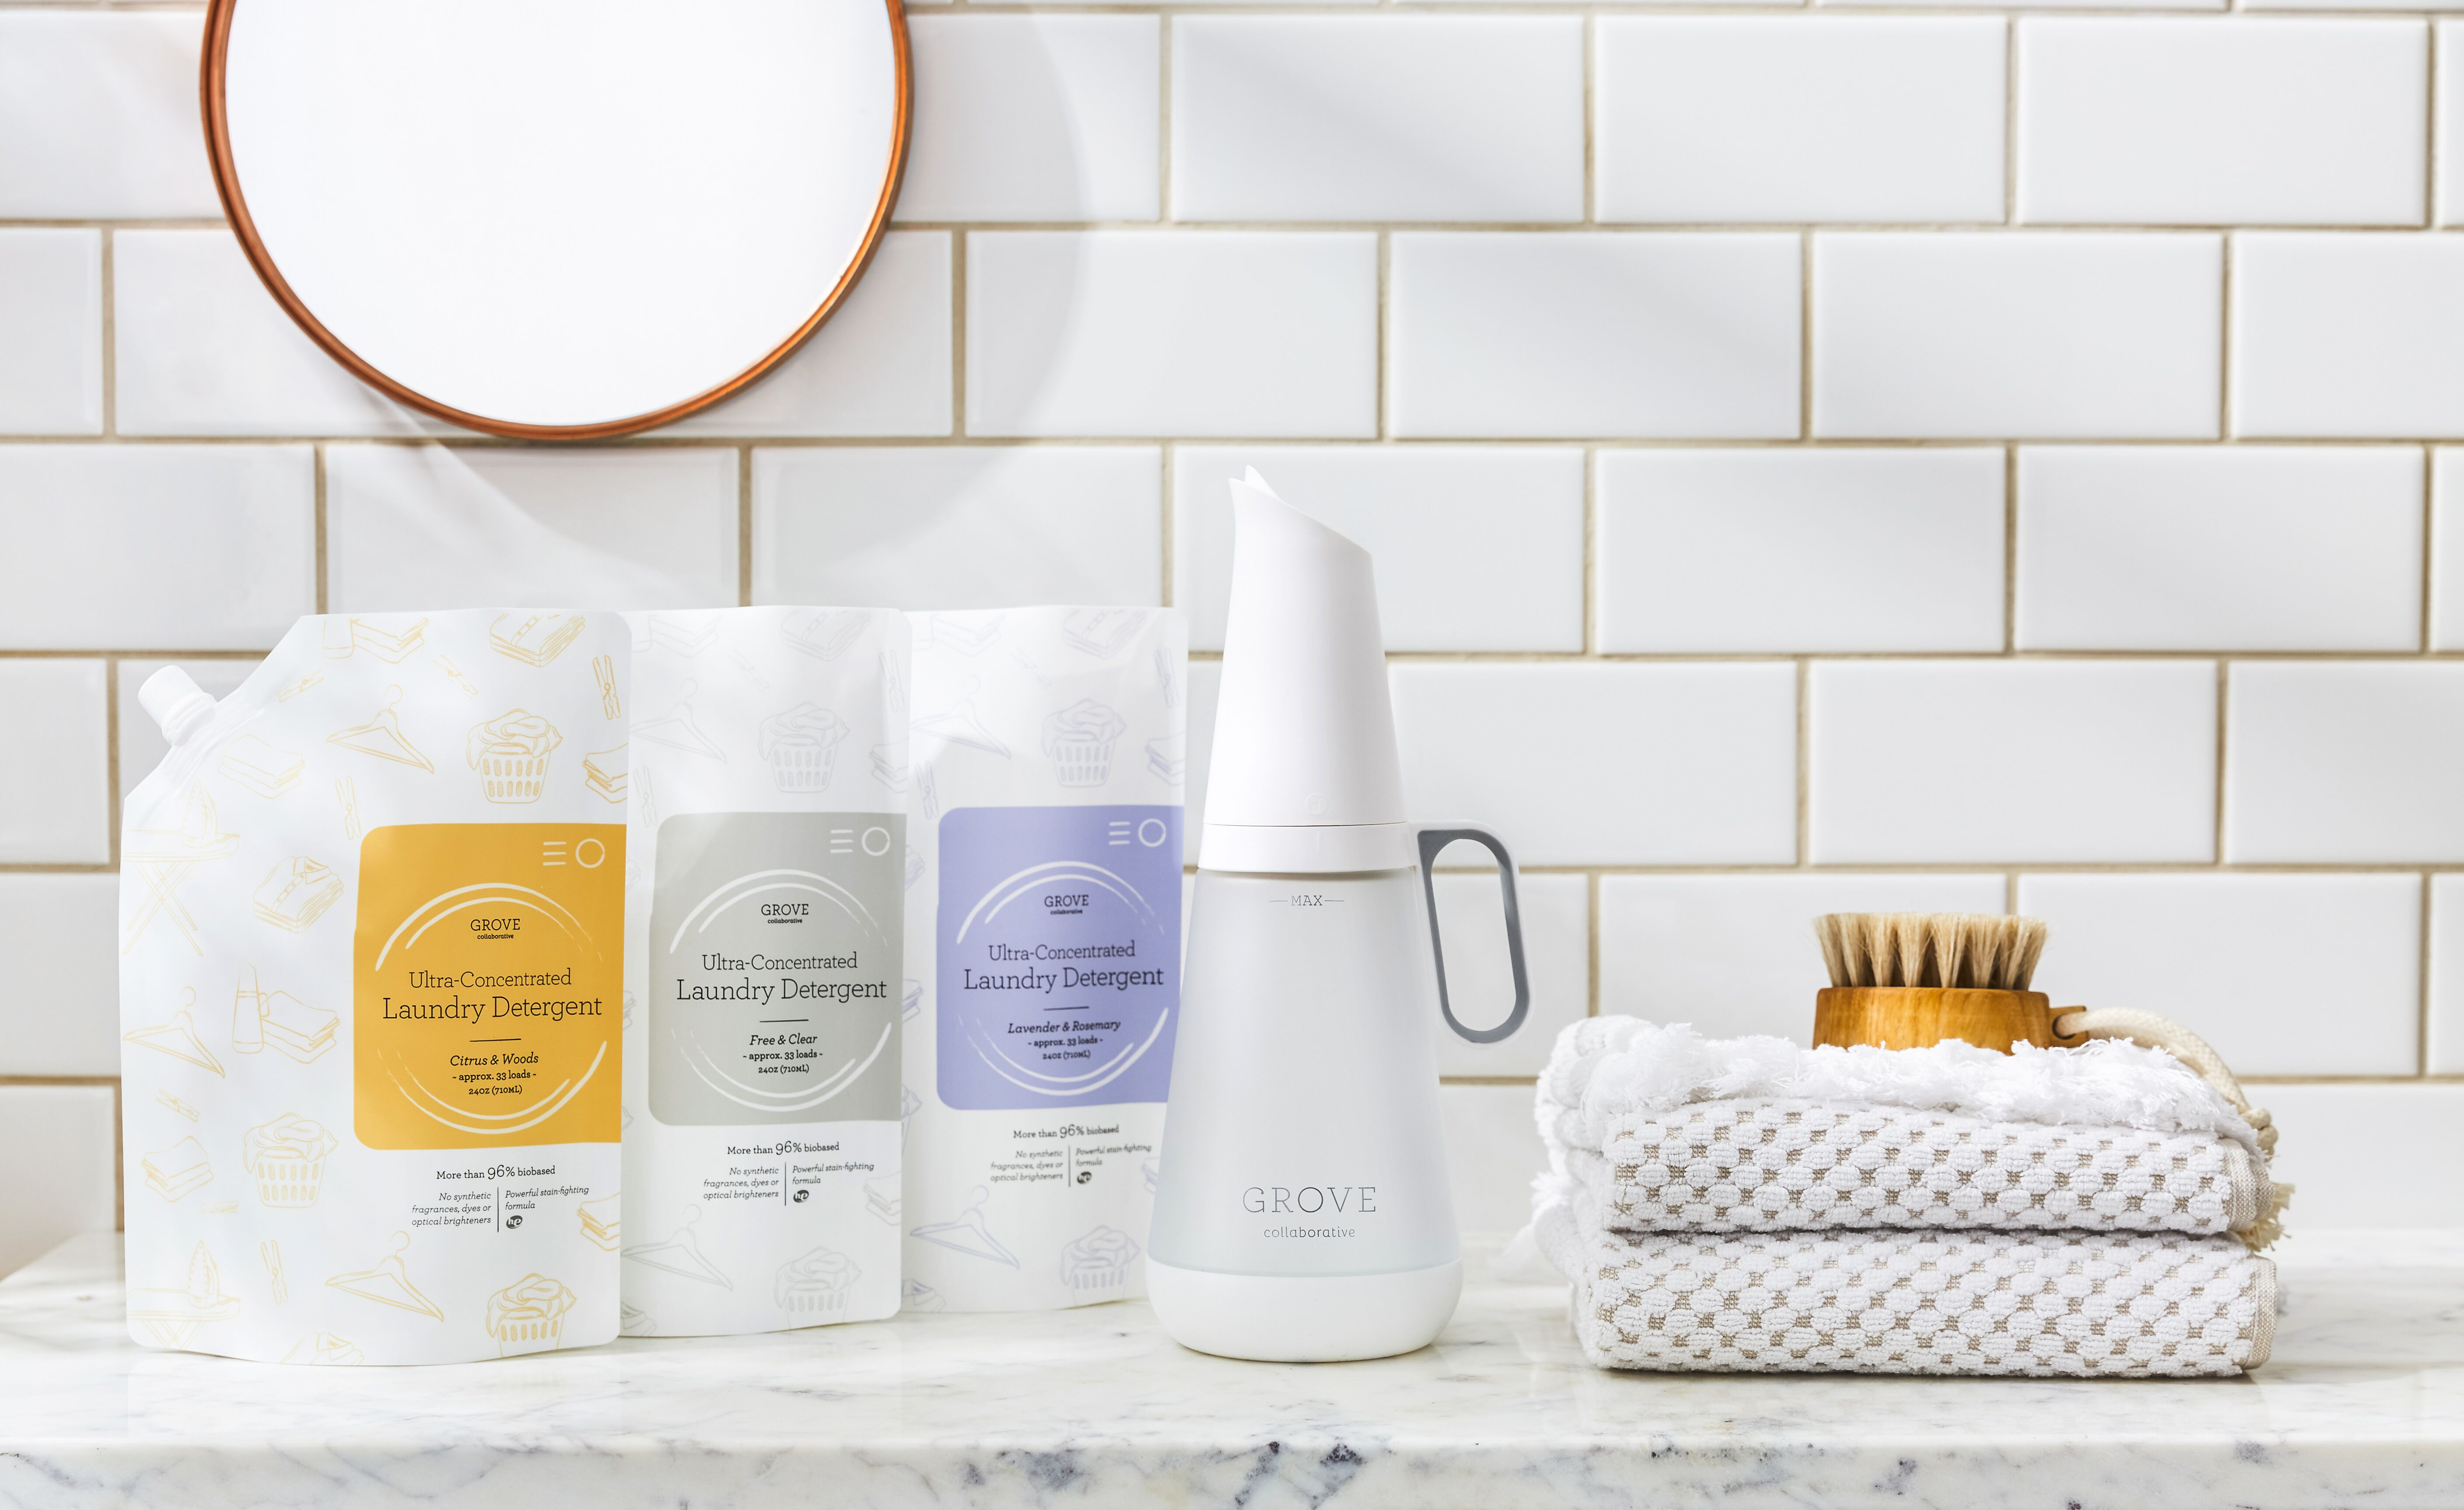 66 All-Natural Cleaning Solutions